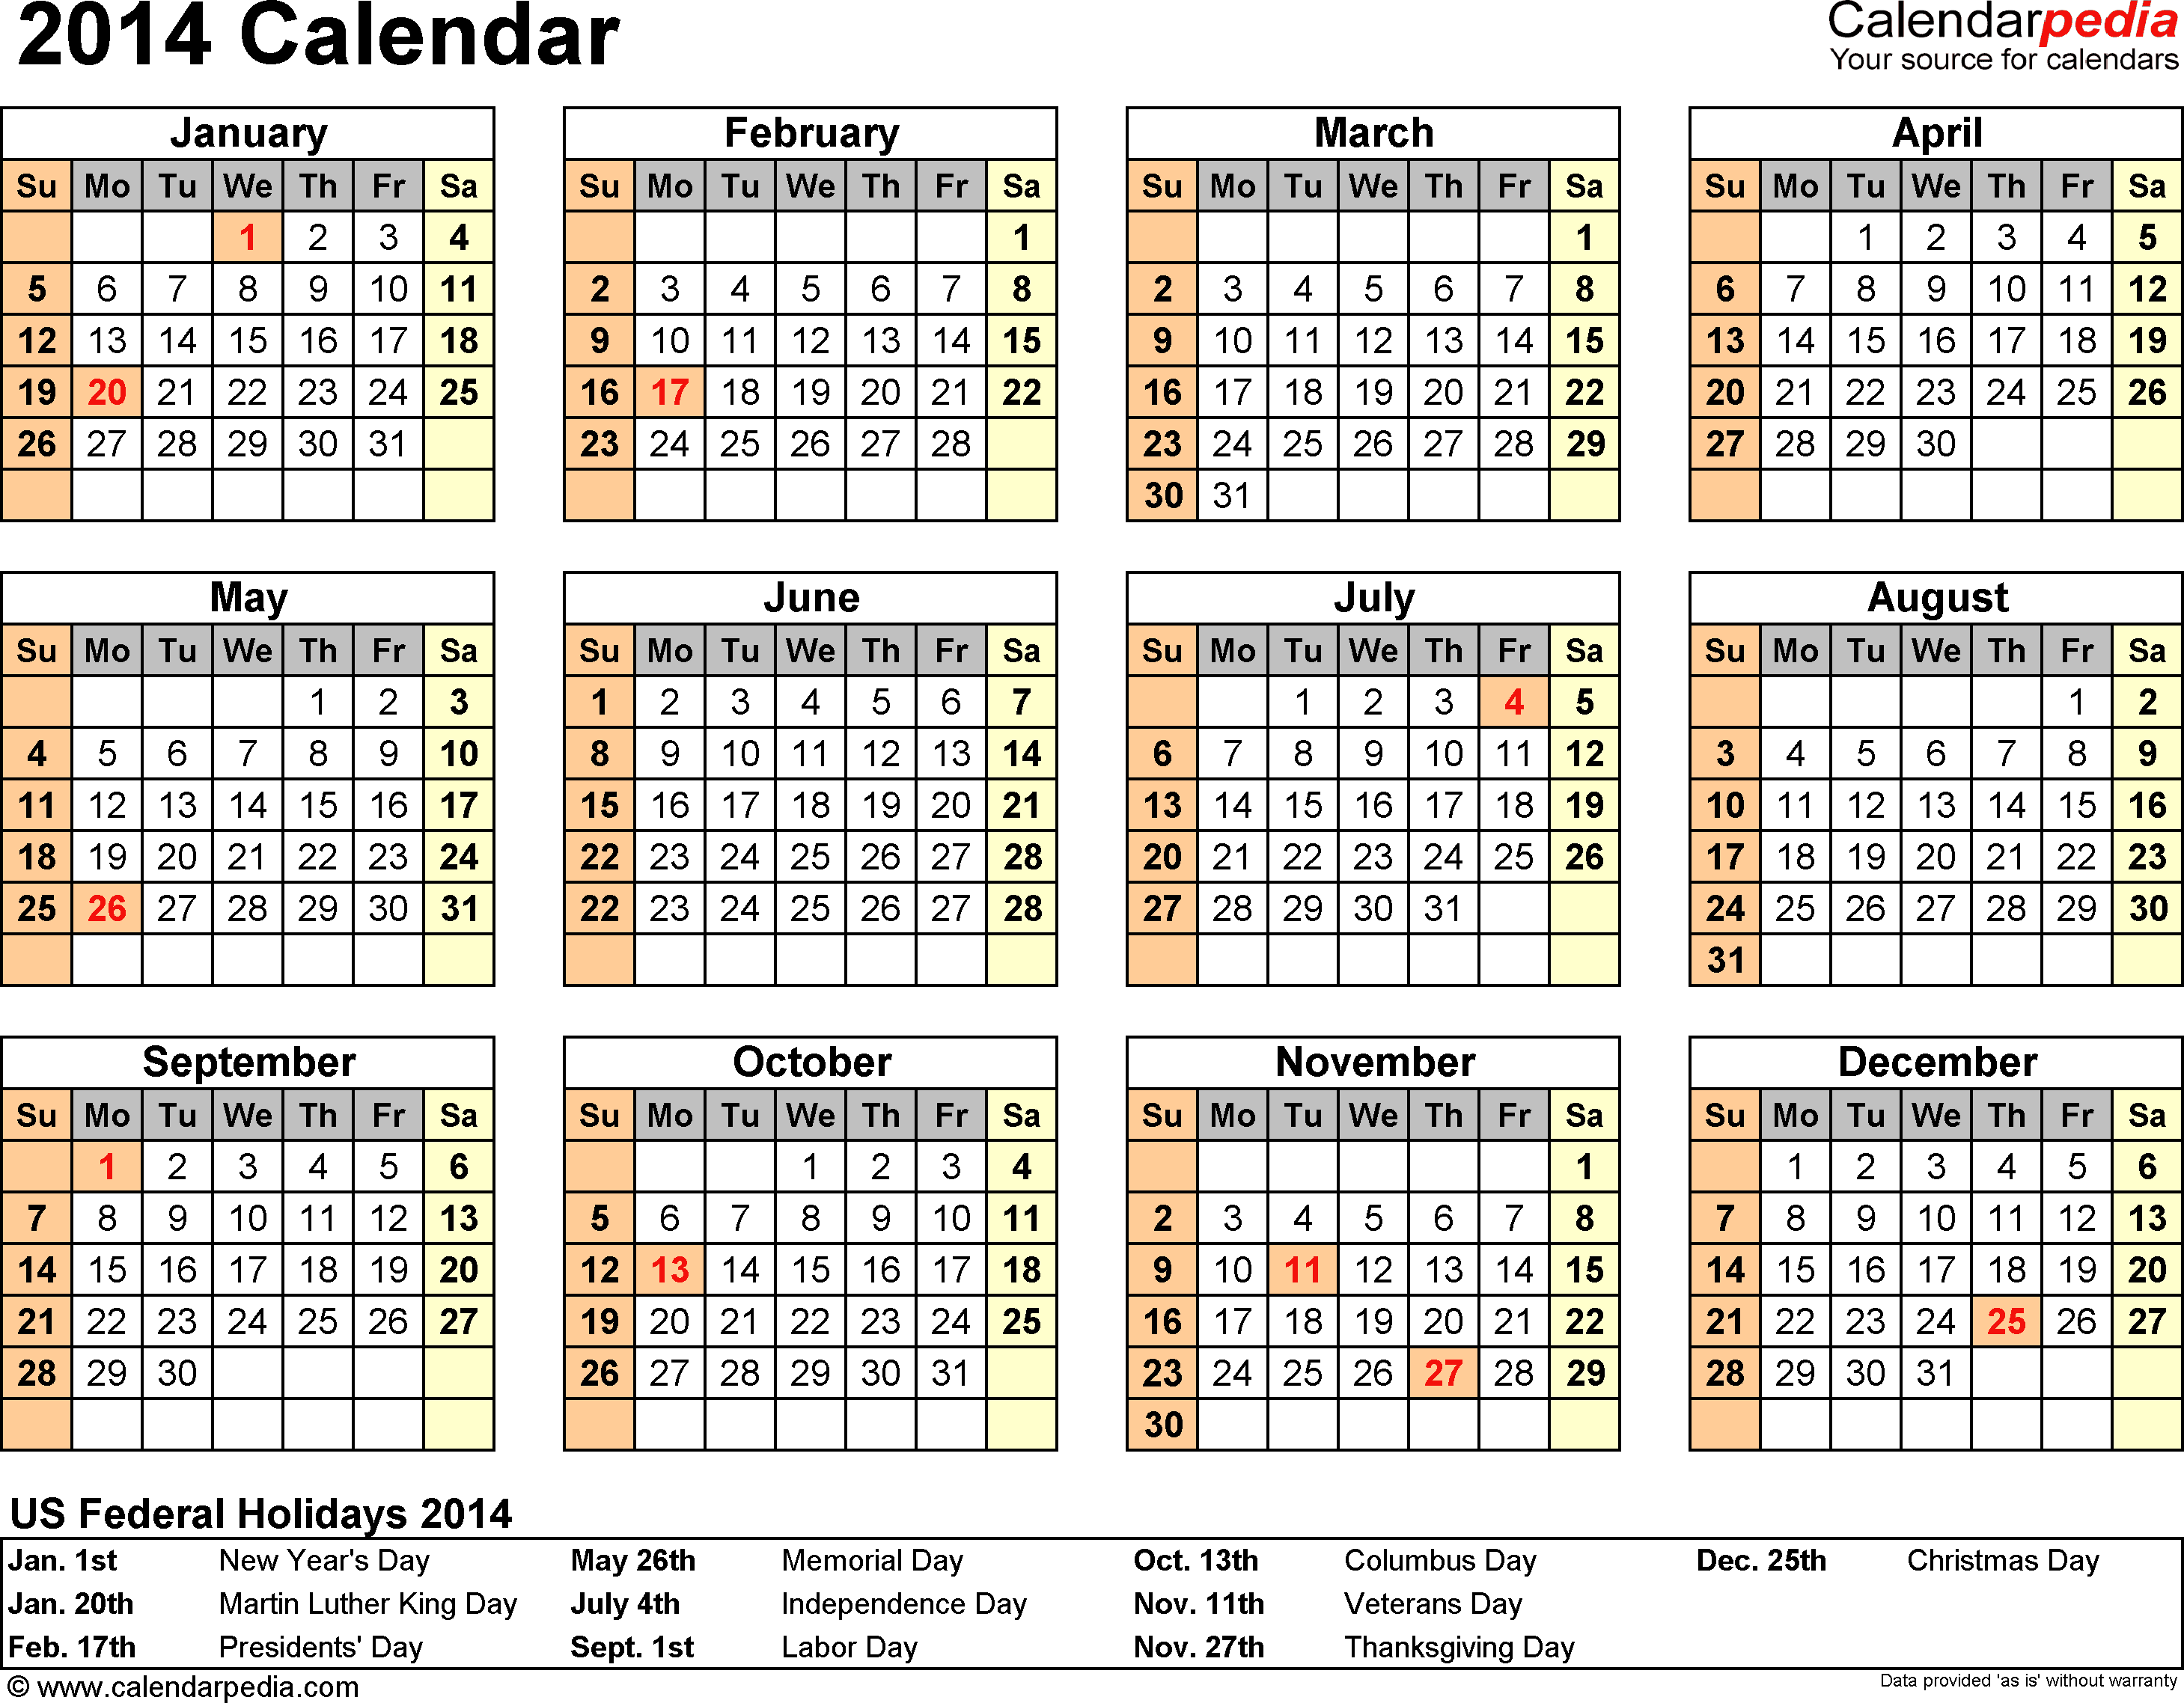 Download PDF template for 2014 calendar template 7: year overview, 1 page, with US federal holidays 2014, paper format: US letter